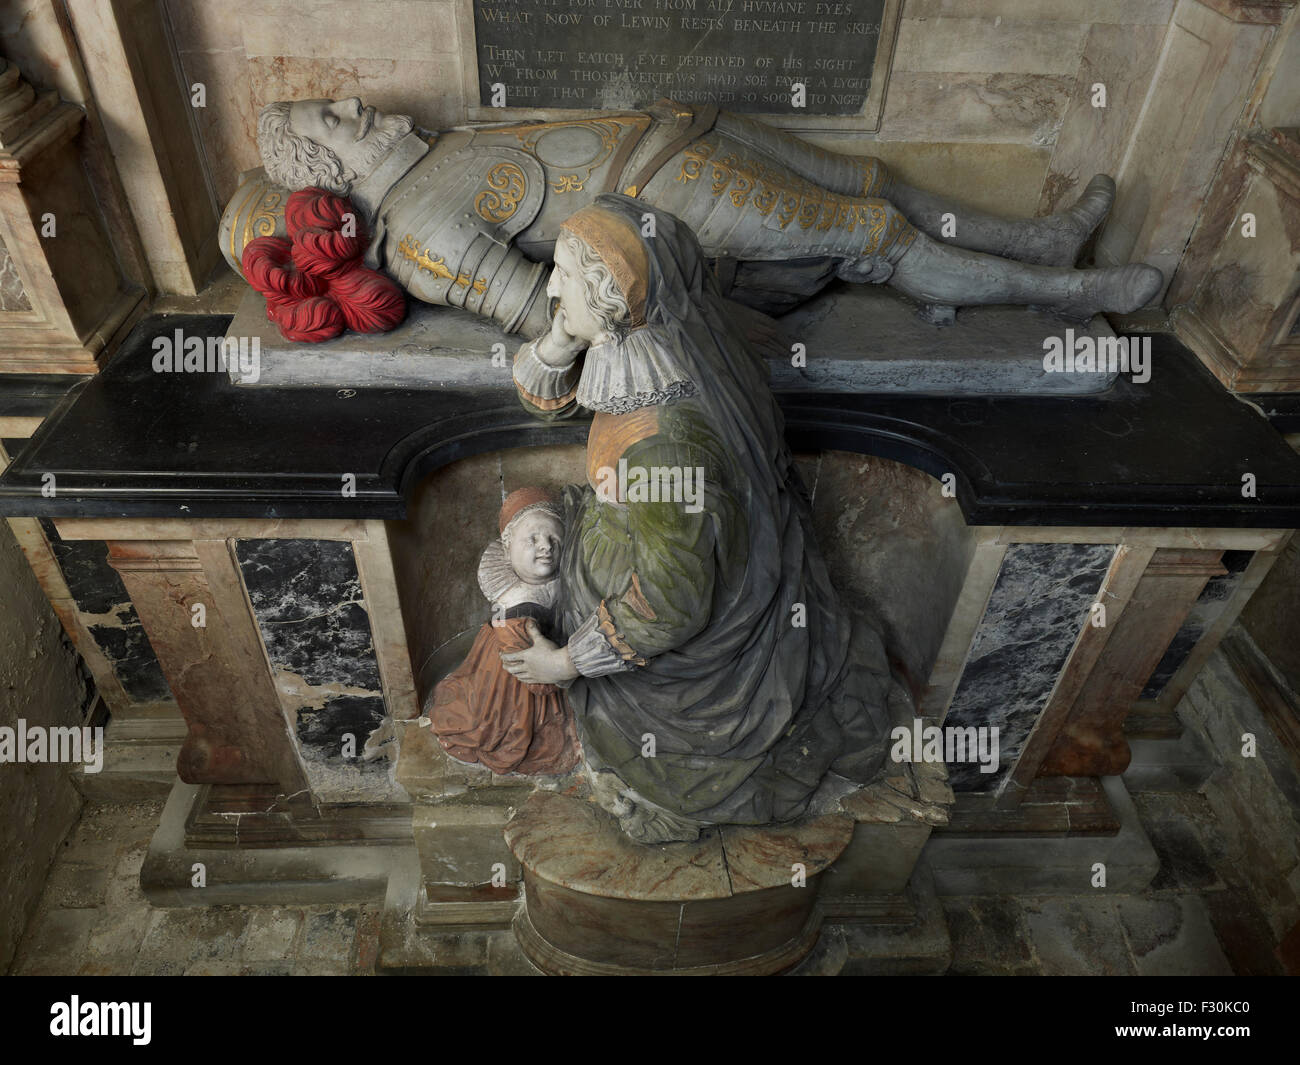 Otterden, Church of St Lawrence, Kent. Monument to Sir Justinian Lewin - Stock Image